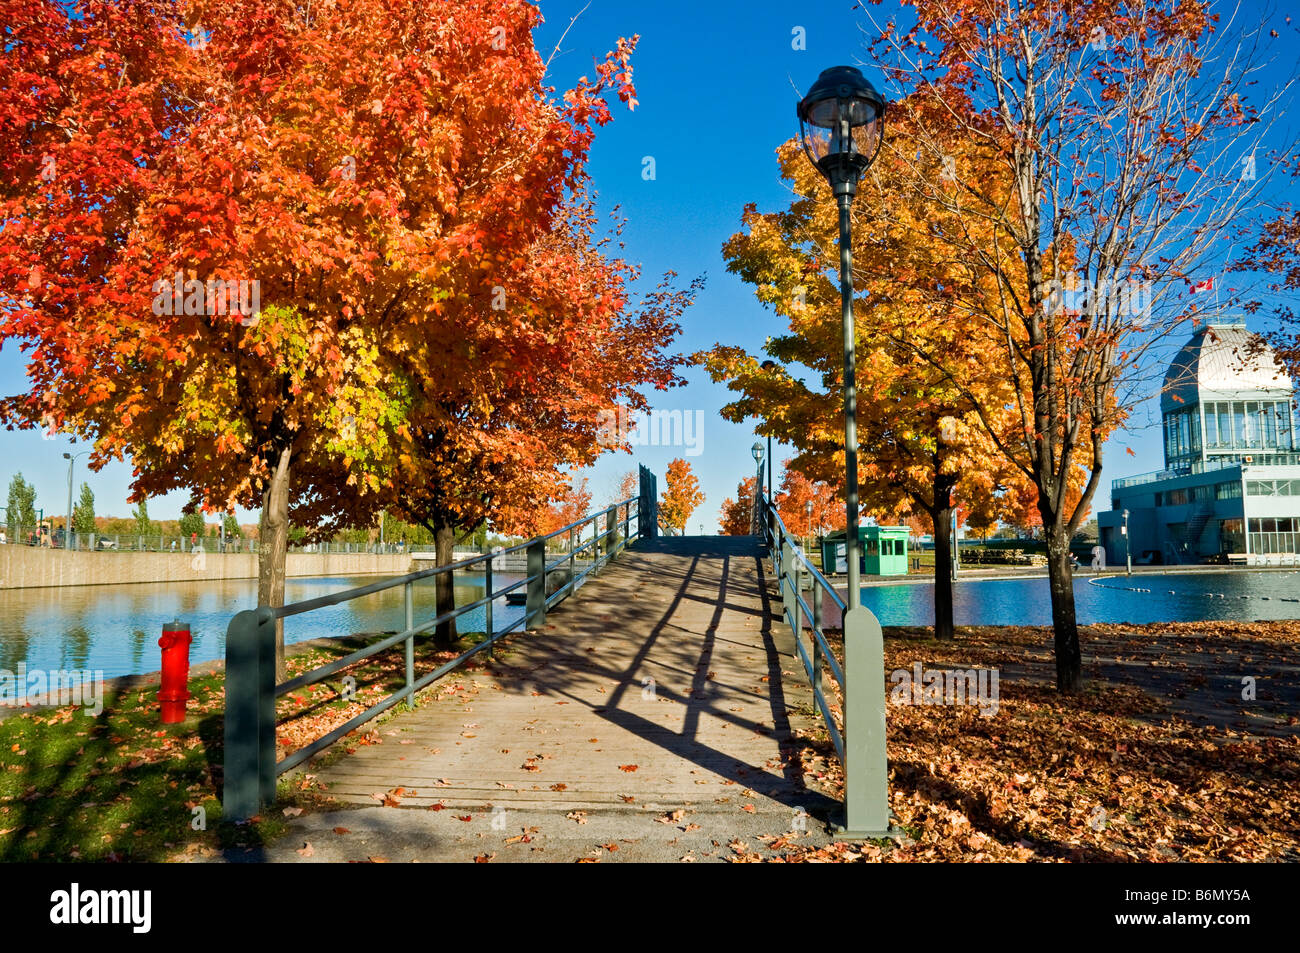 Fall season in Old Montreal Bassin Bonsecours - Stock Image